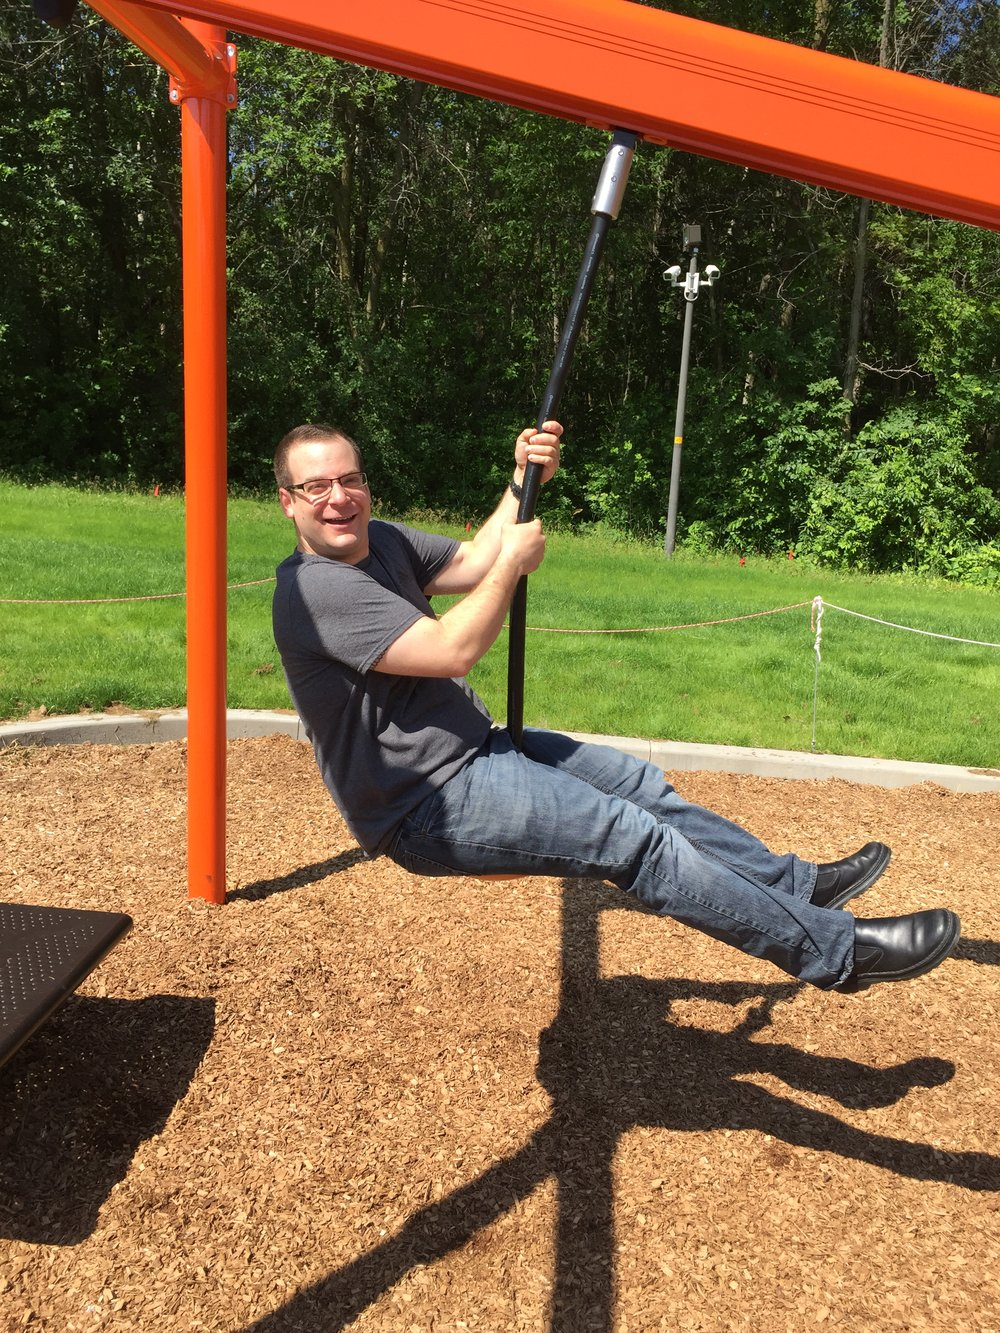 Steve playing at park Minnesota.JPG